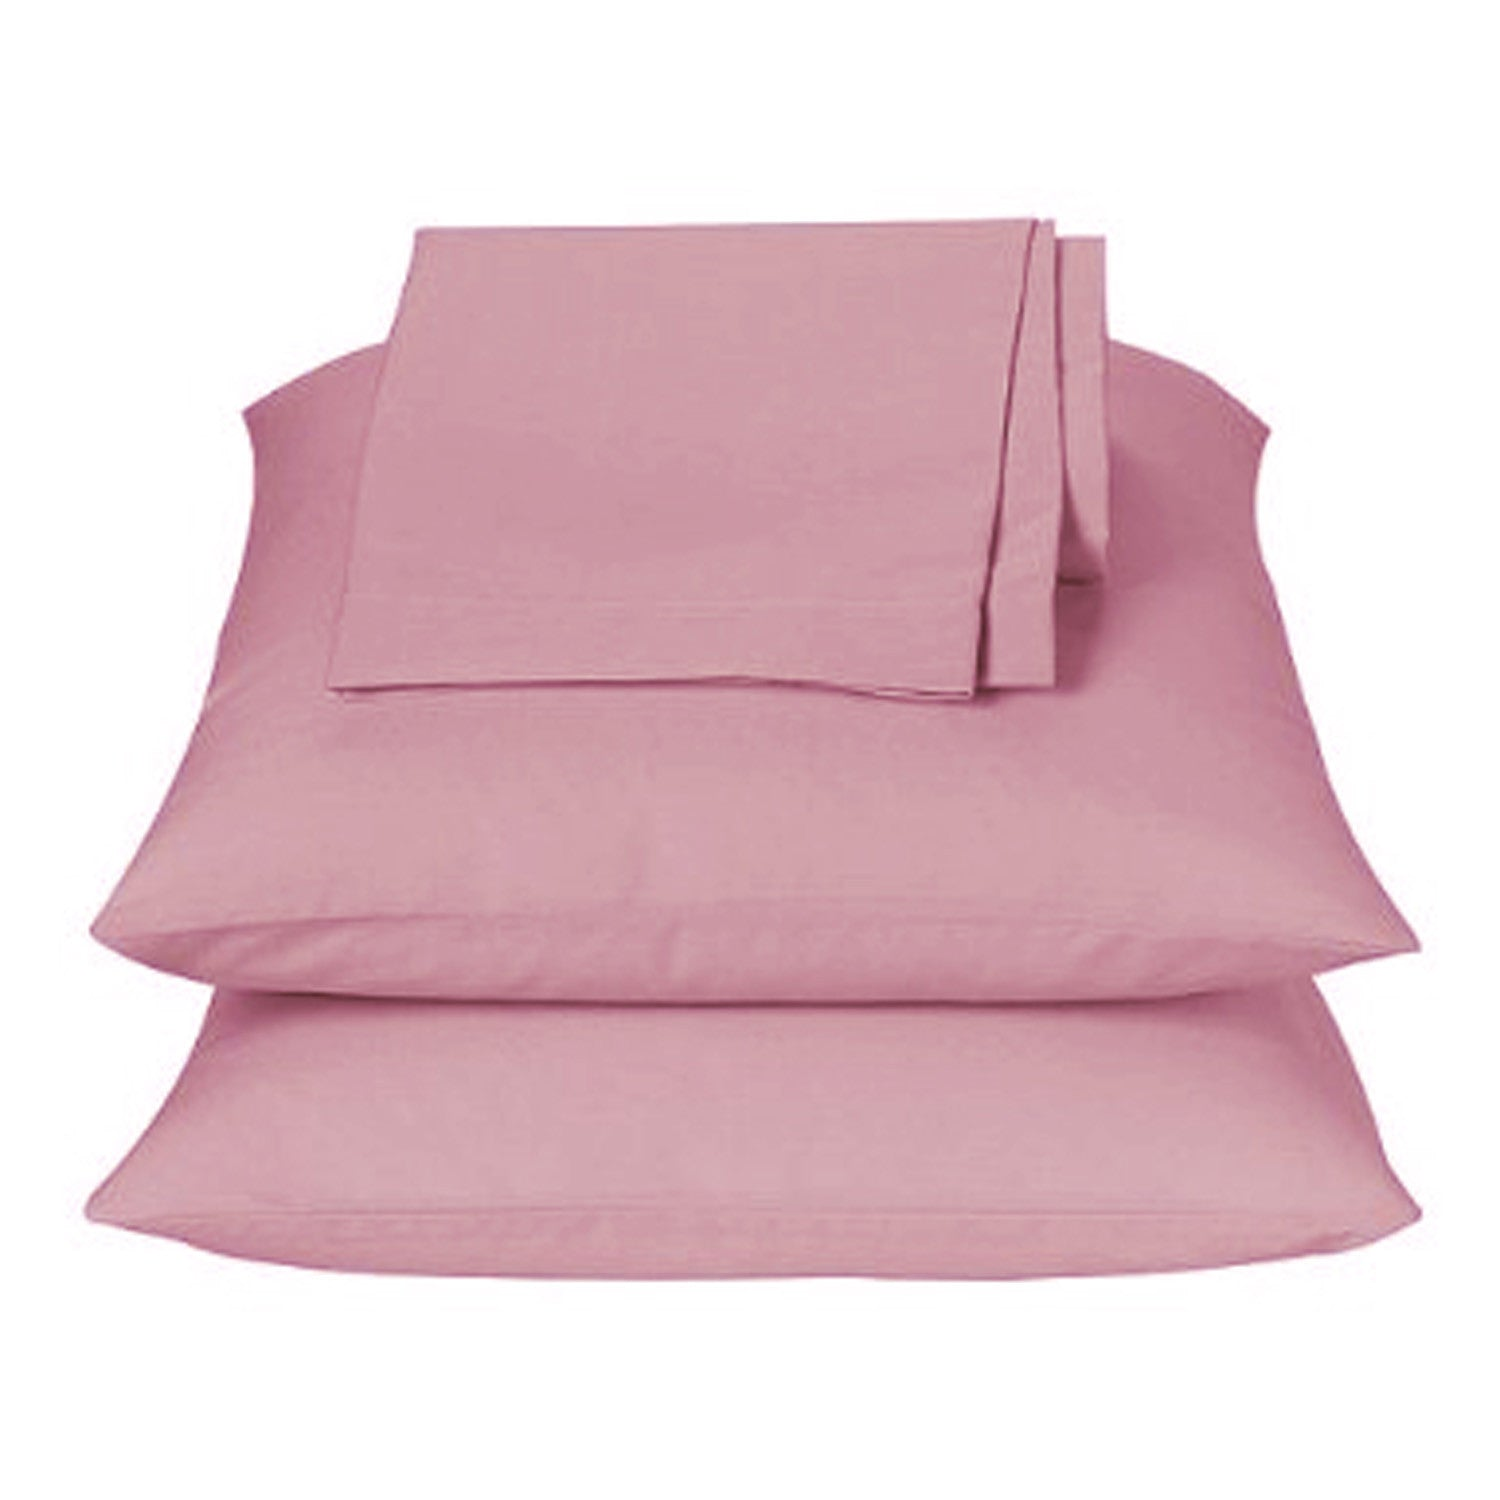 Mauve Waterbed Sheets Queen - Back40Trading2